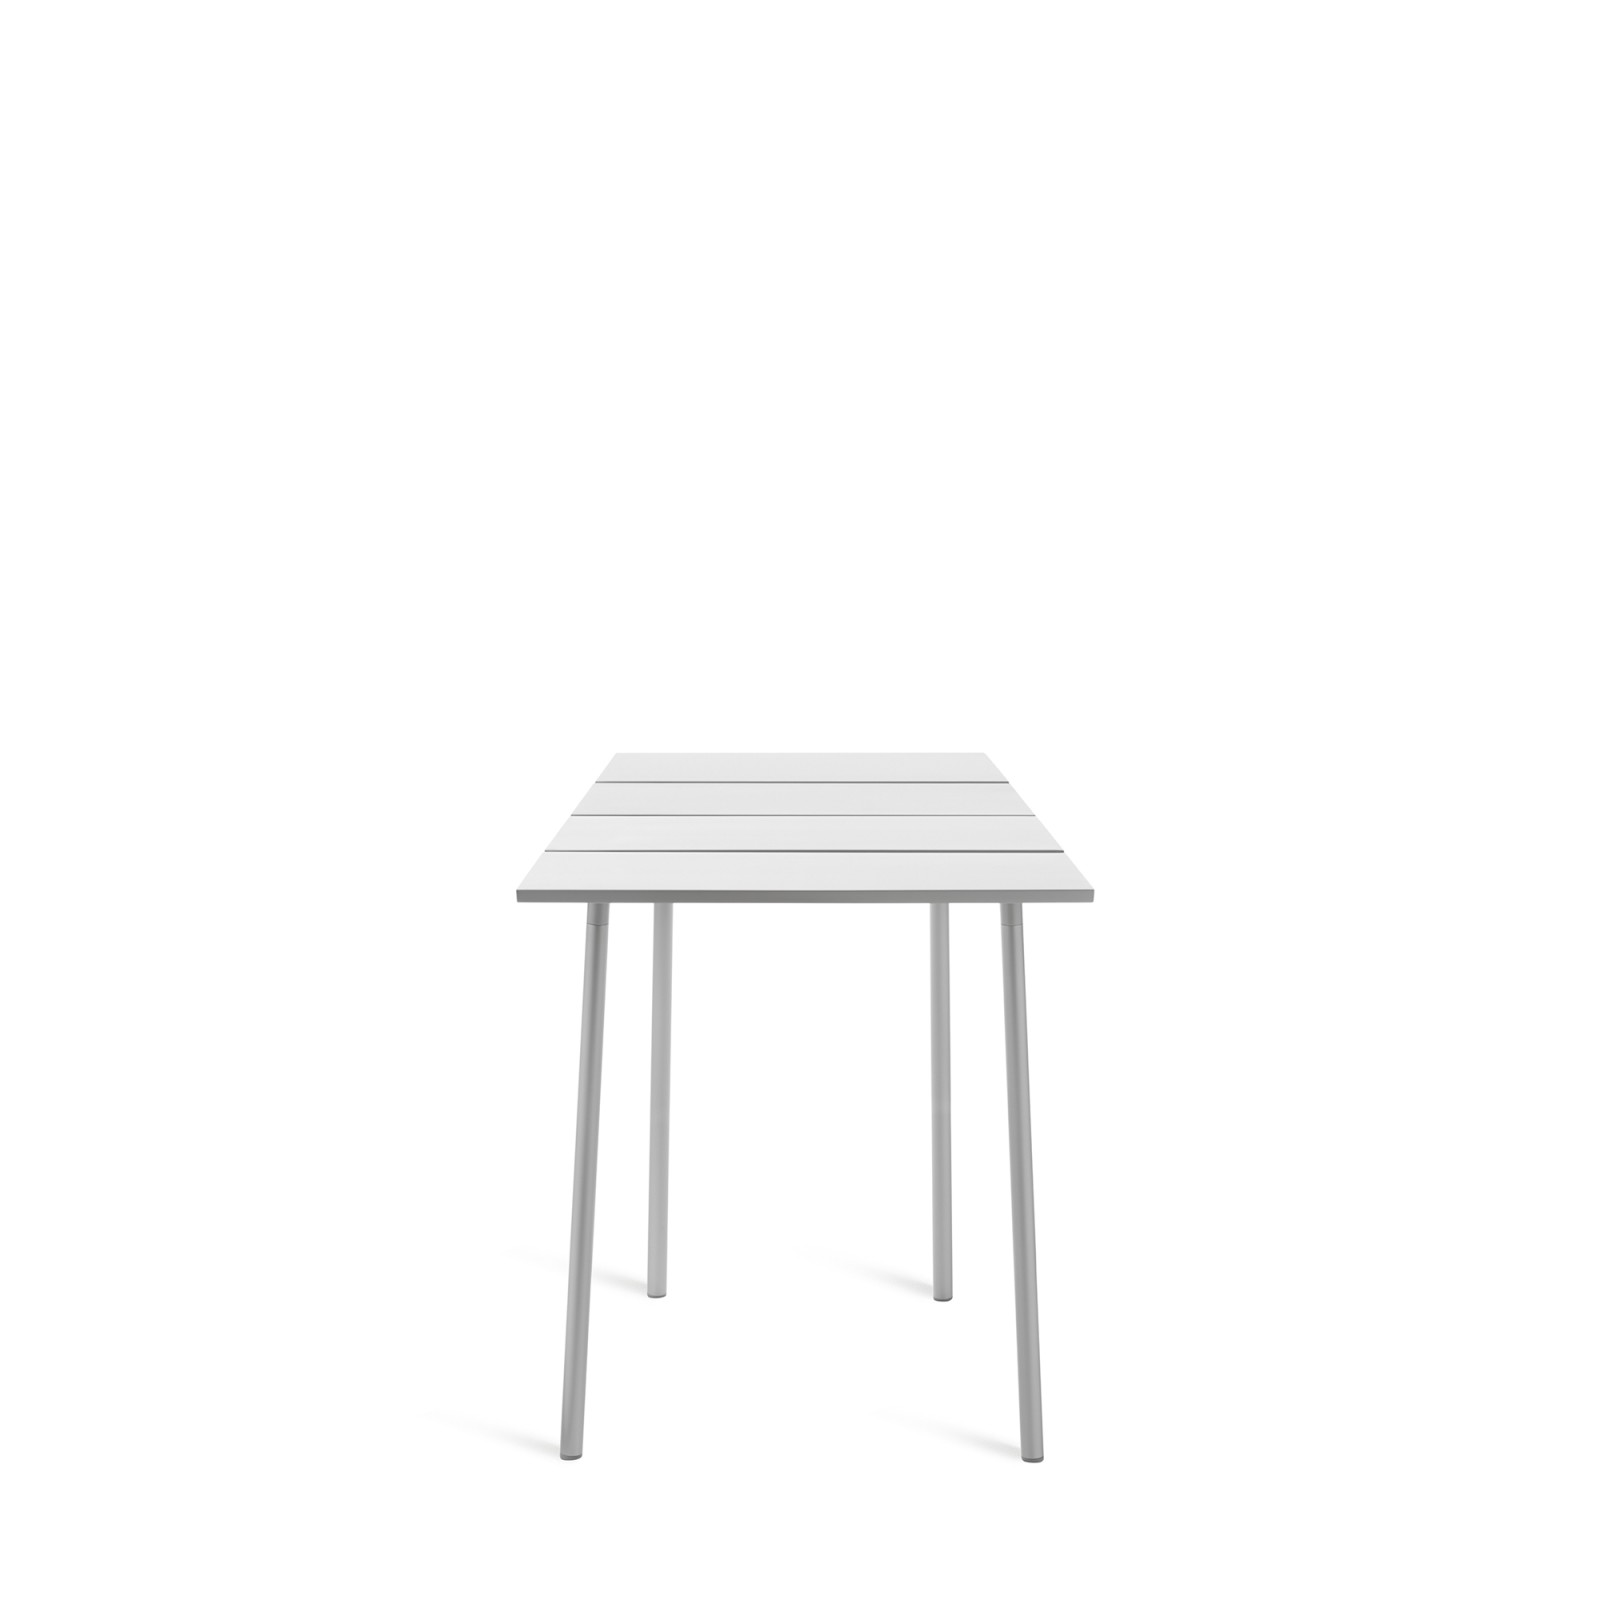 Run High Table Aluminium, Aluminium, 122cm